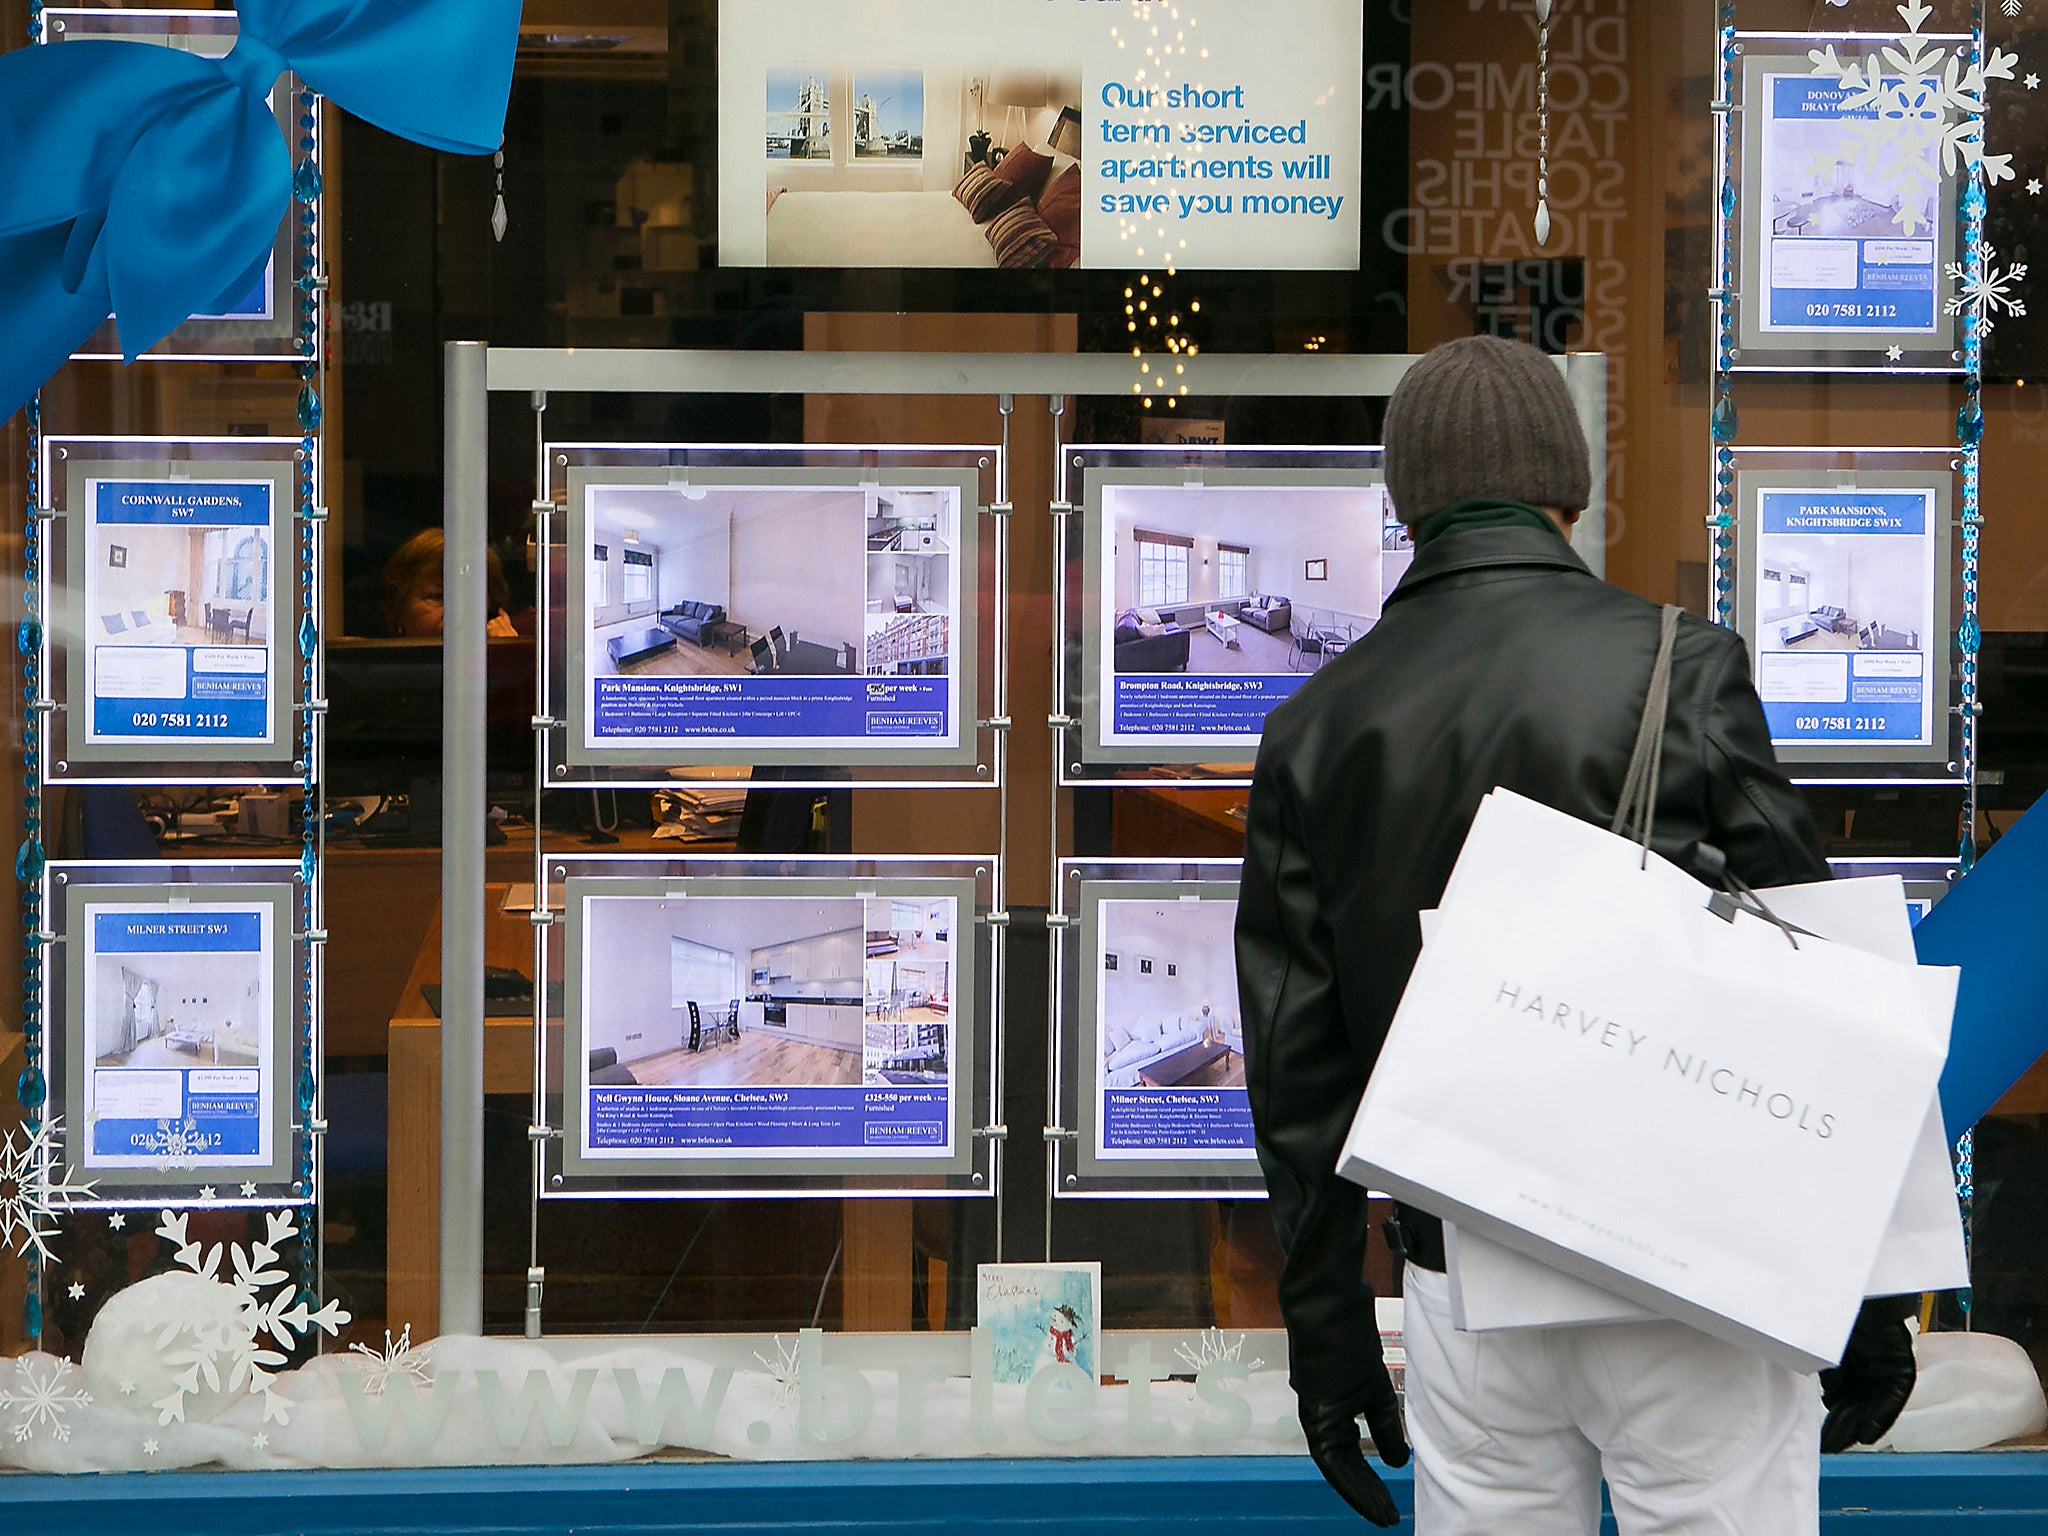 Fifth Of Uk Estate Agents Risk Going Bust Reveals Survey